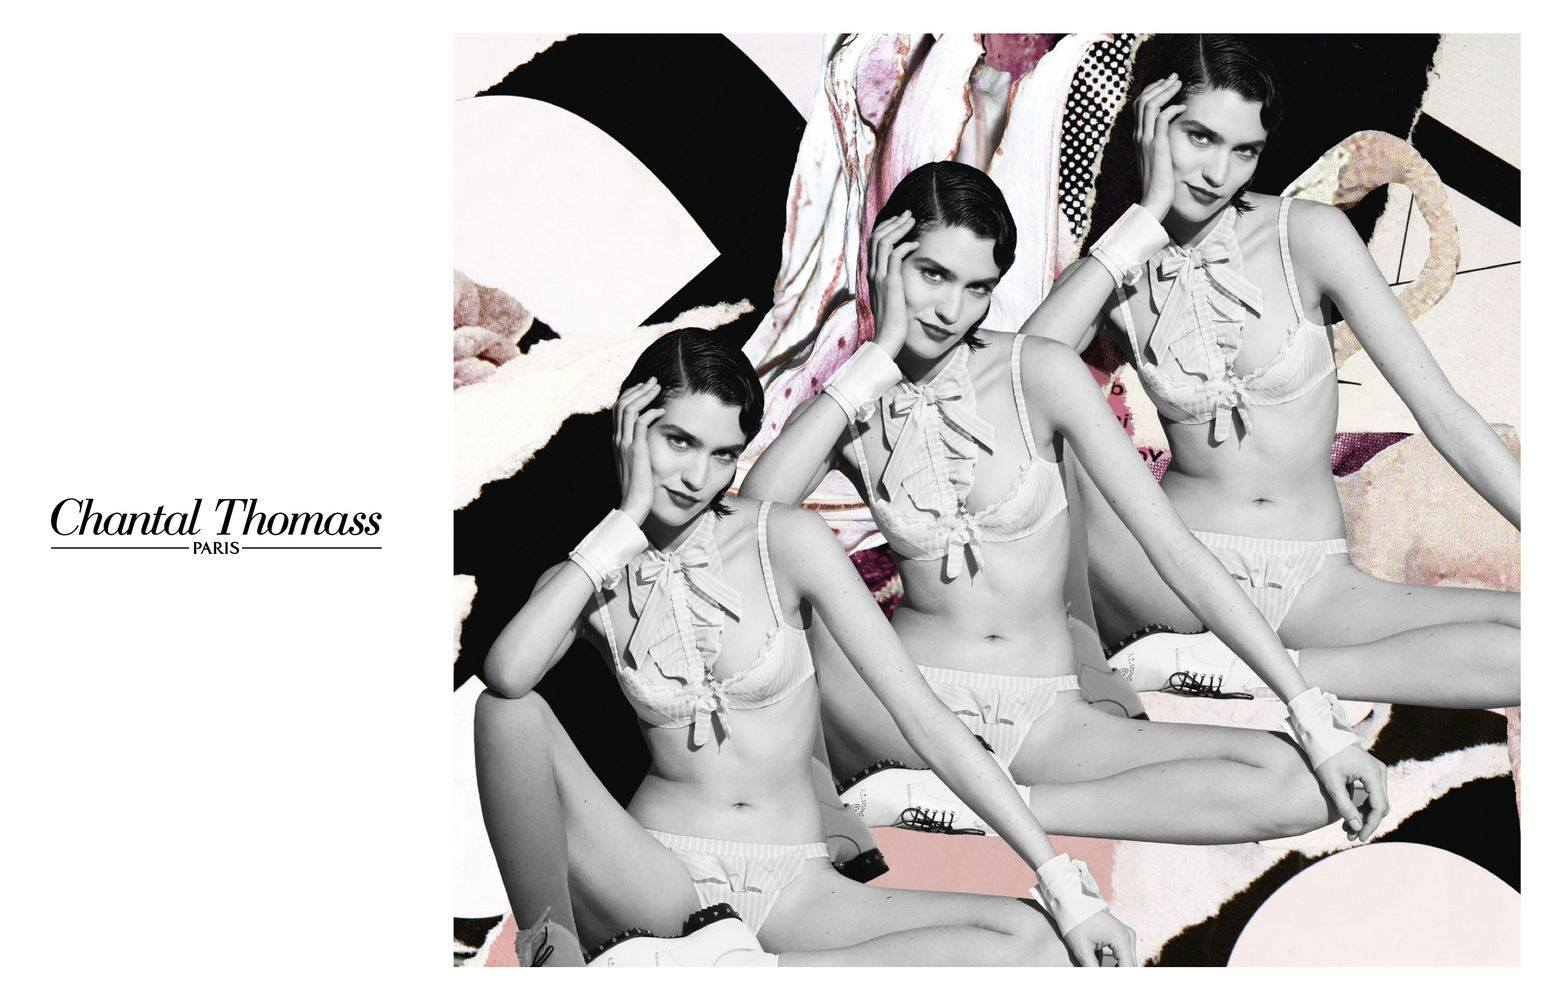 Chantal Thomass Campaign starring Manon Leloup by Quentin Jones